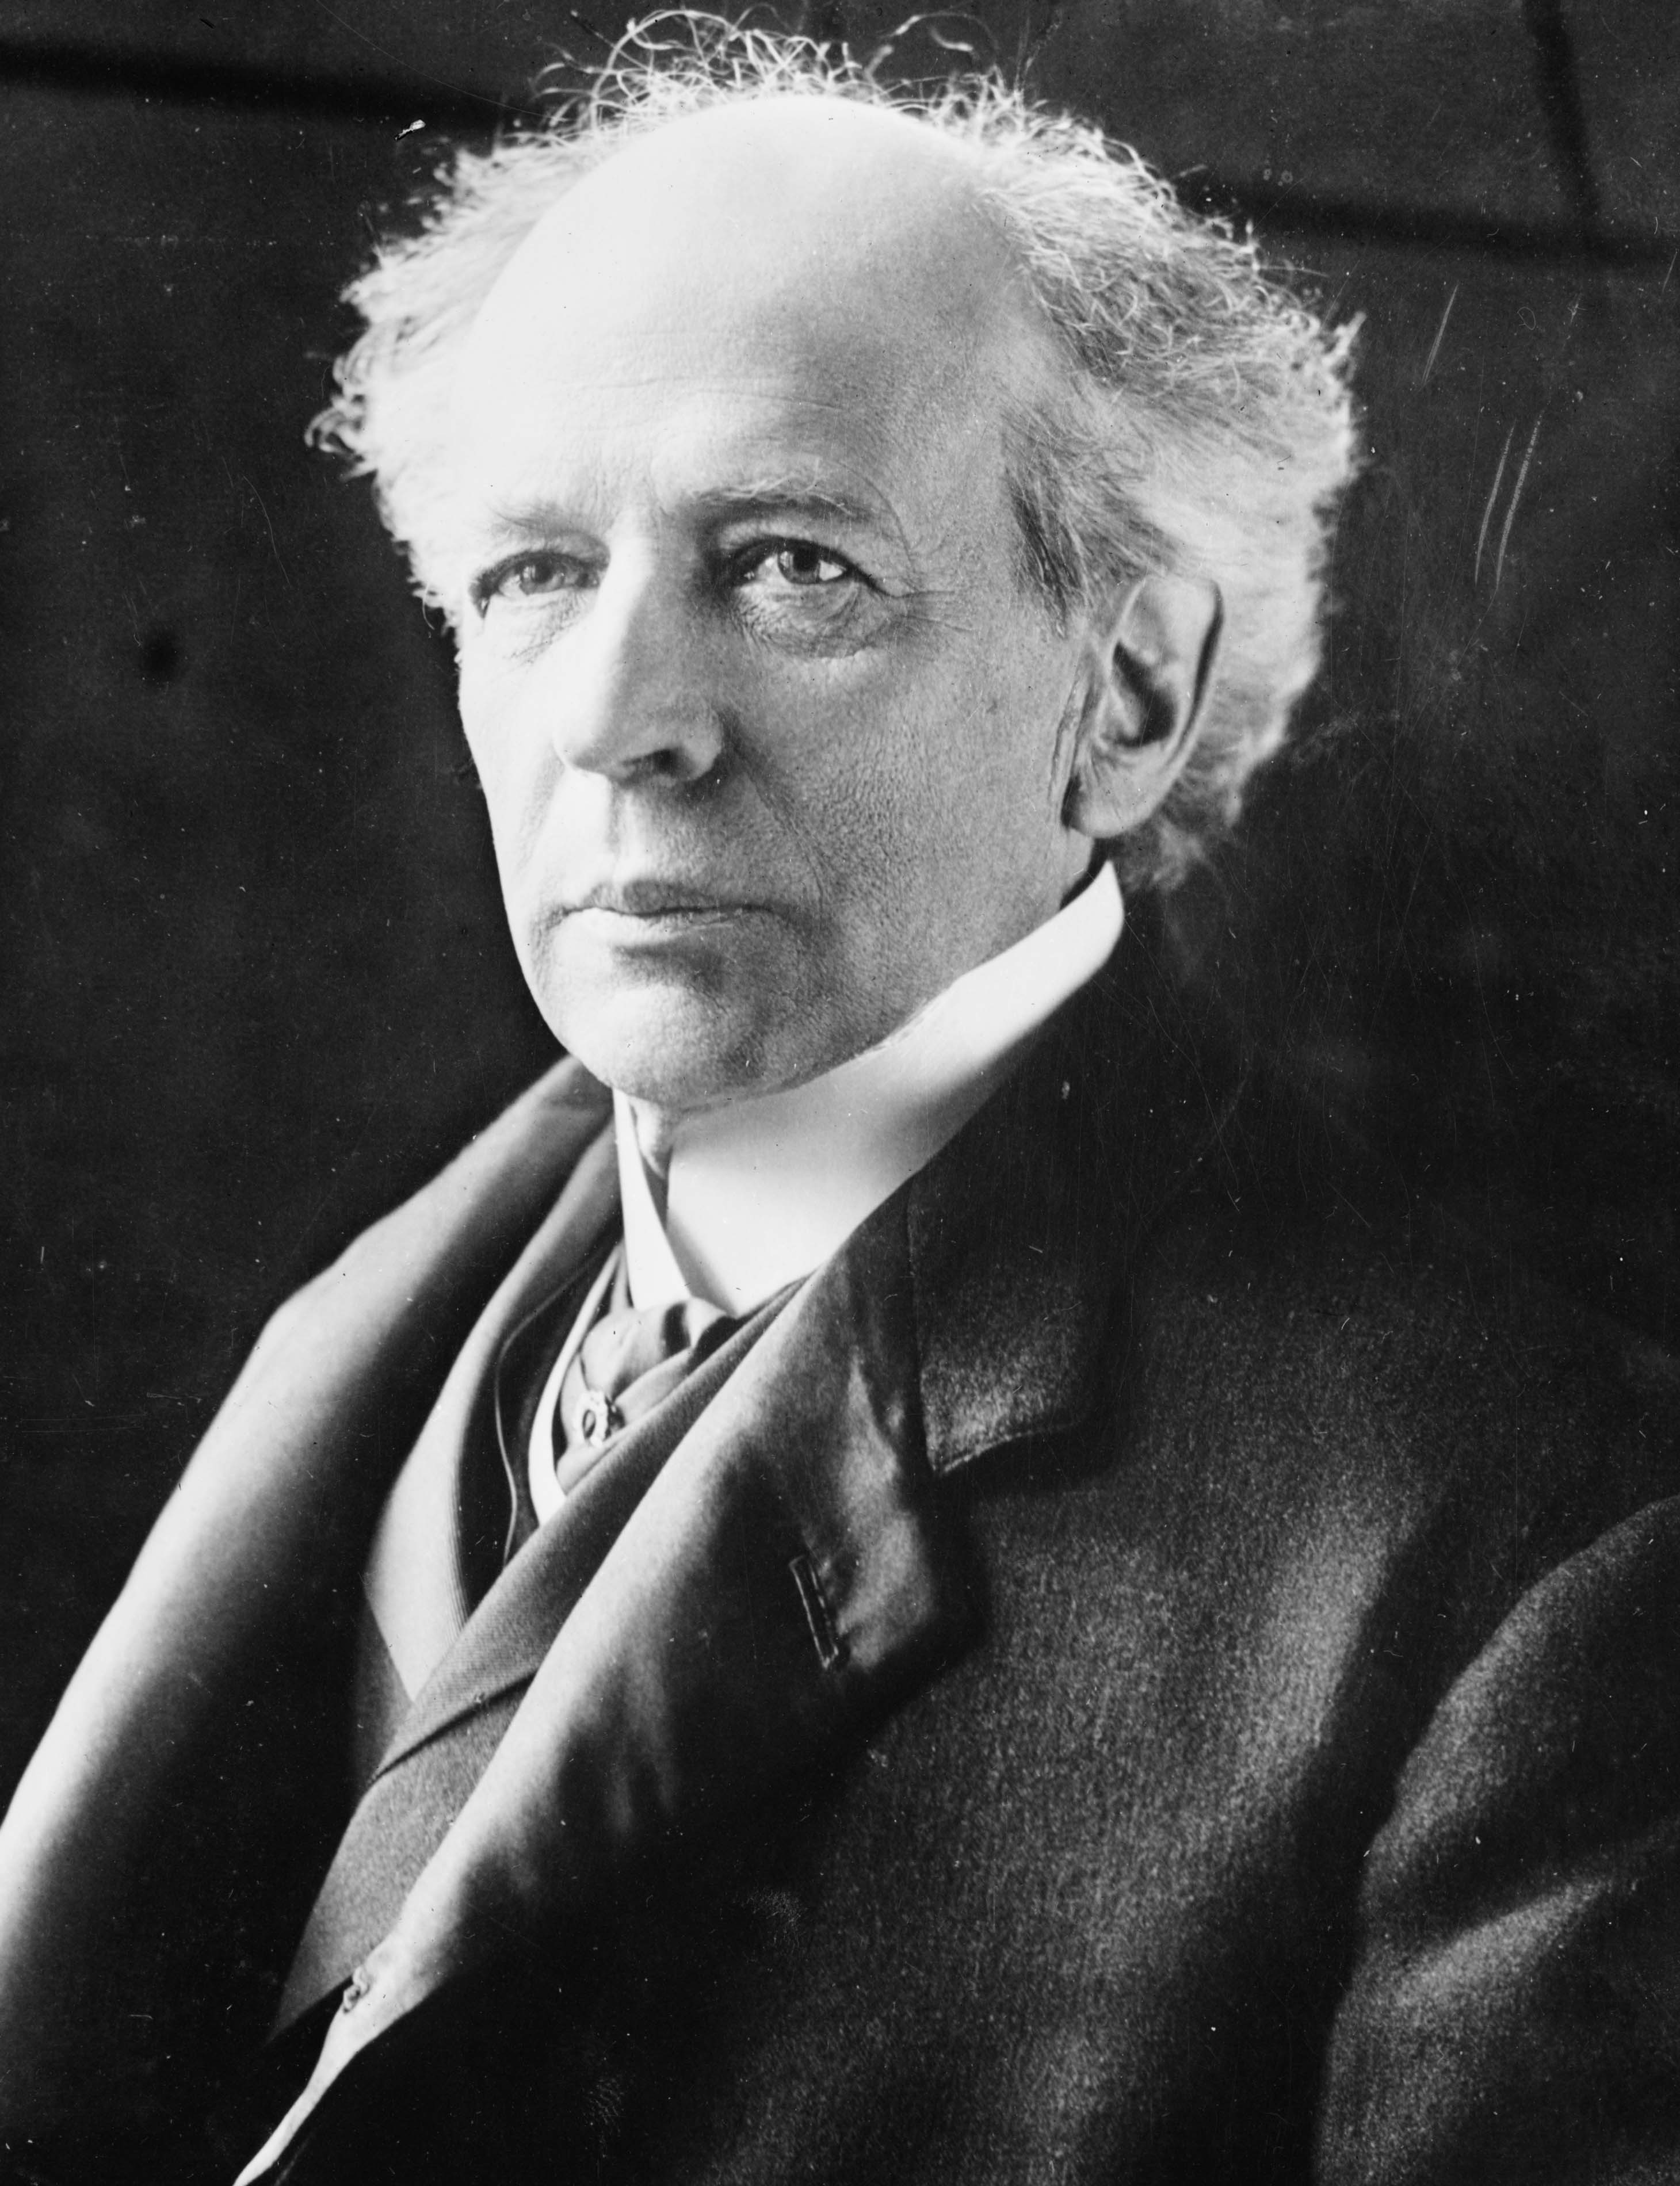 evaluation of sir wilfrid laurier essay Essay sir wilfrid laurier by ritchie rocha the first french canadian to become prime minister of canada was wilfrid laurier although french was his native tongue, he became a master of the english language.